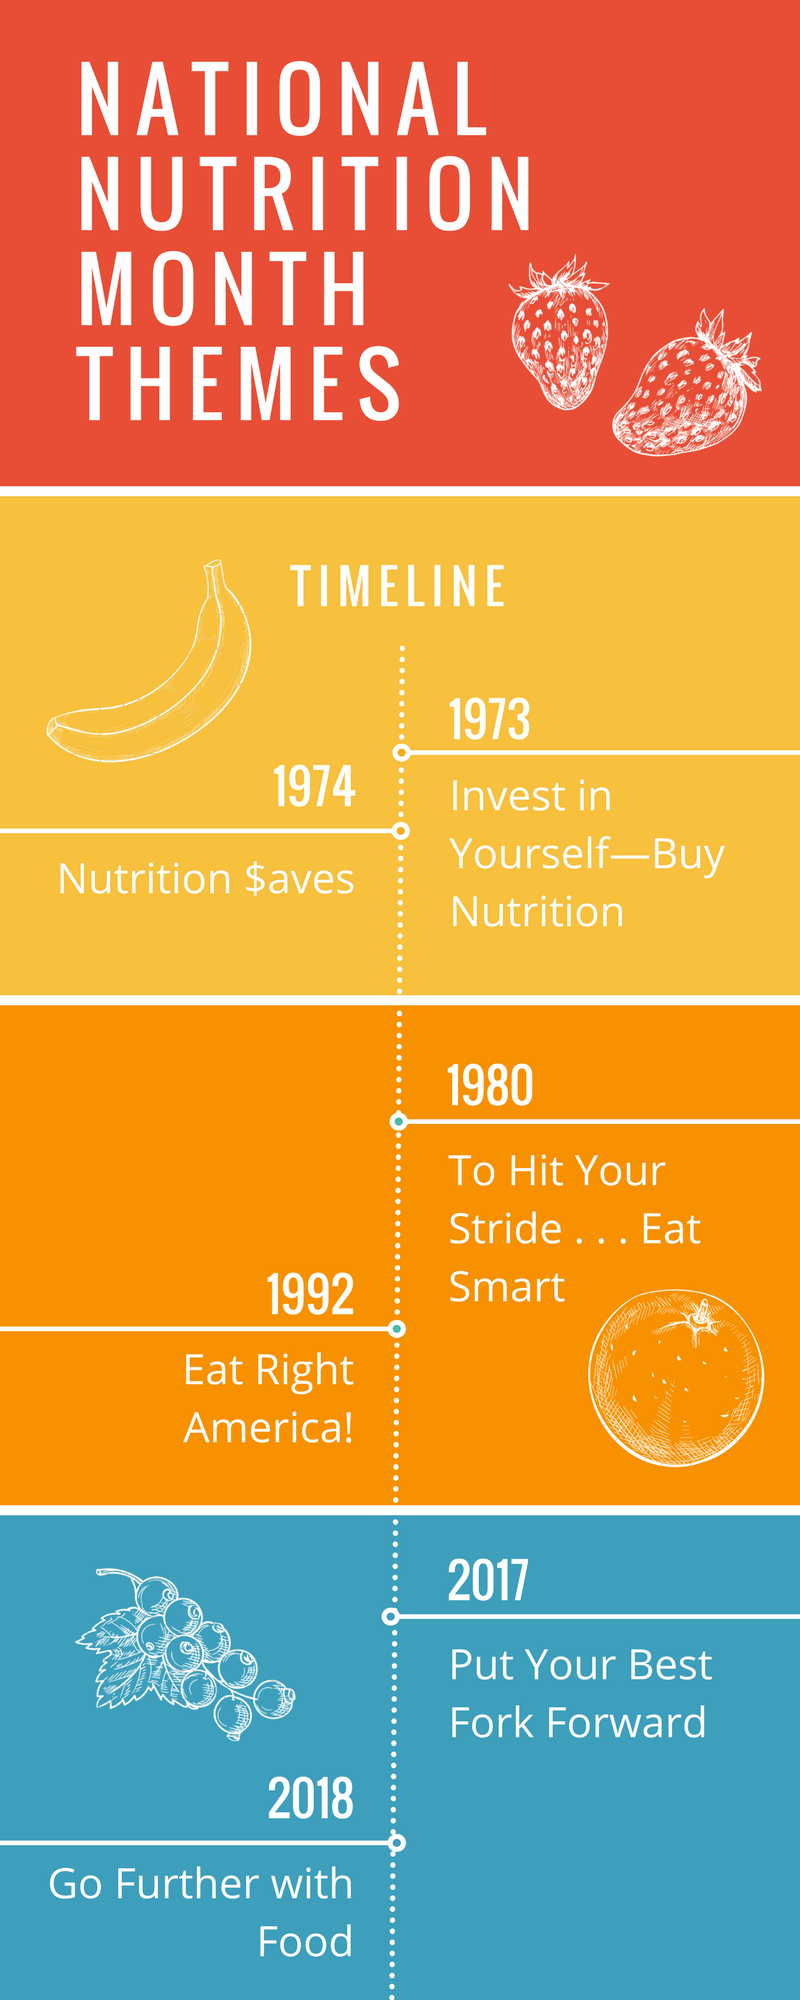 A timeline of the National Nutrition month themes.